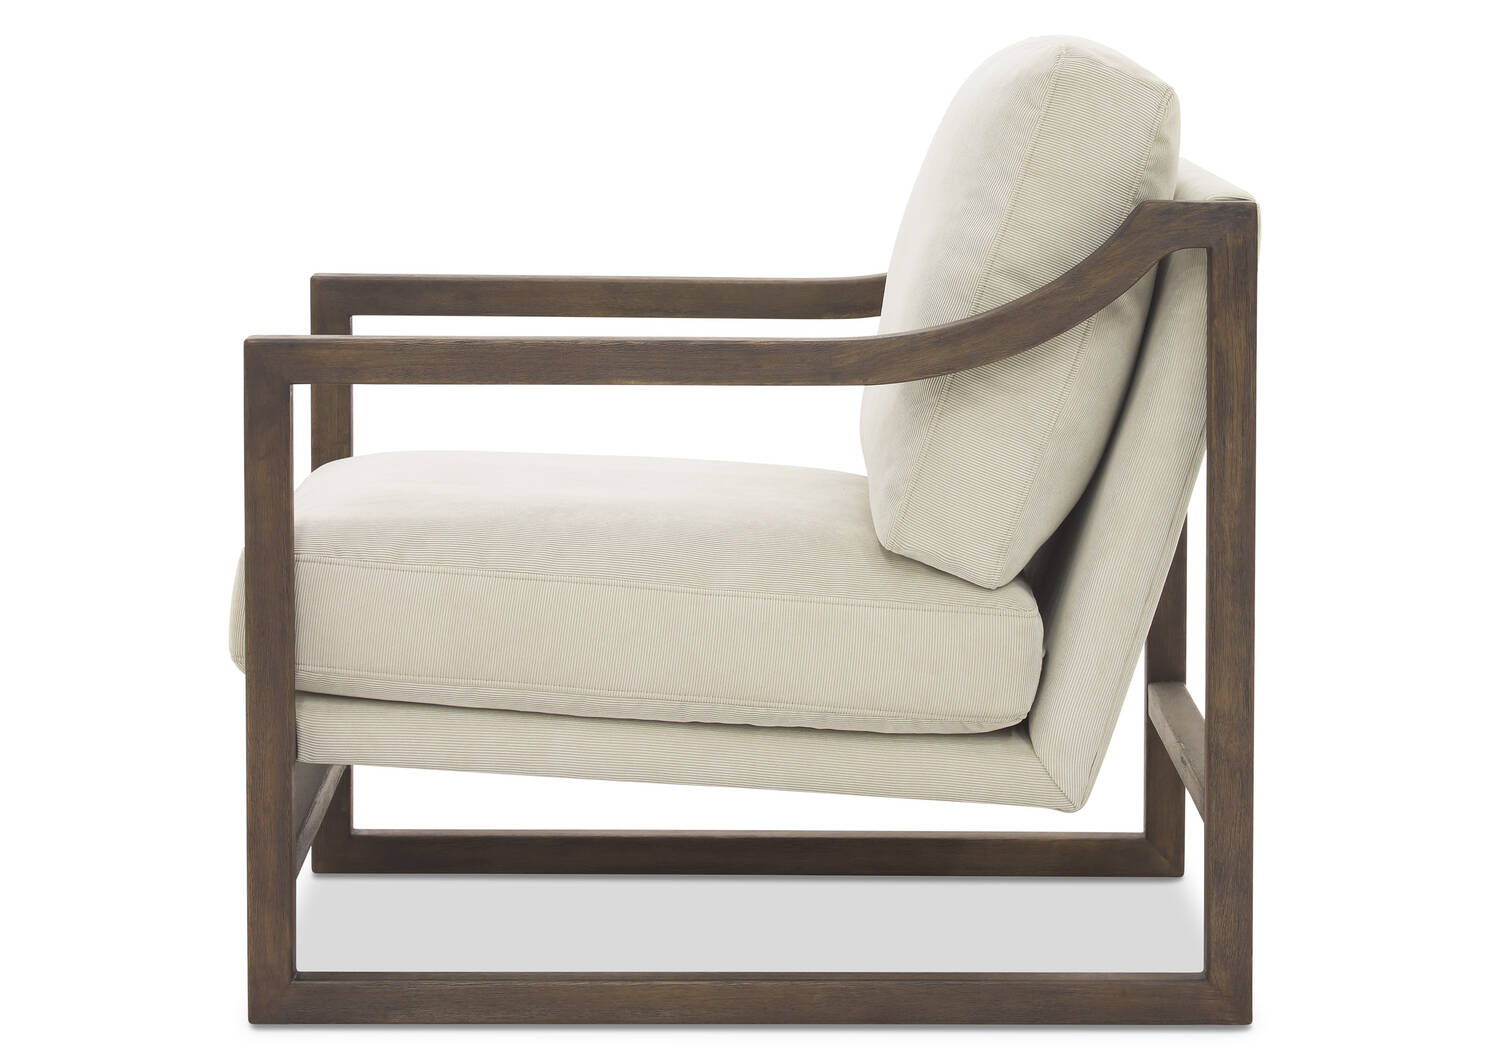 Fauteuil Ridley -Conor pierre